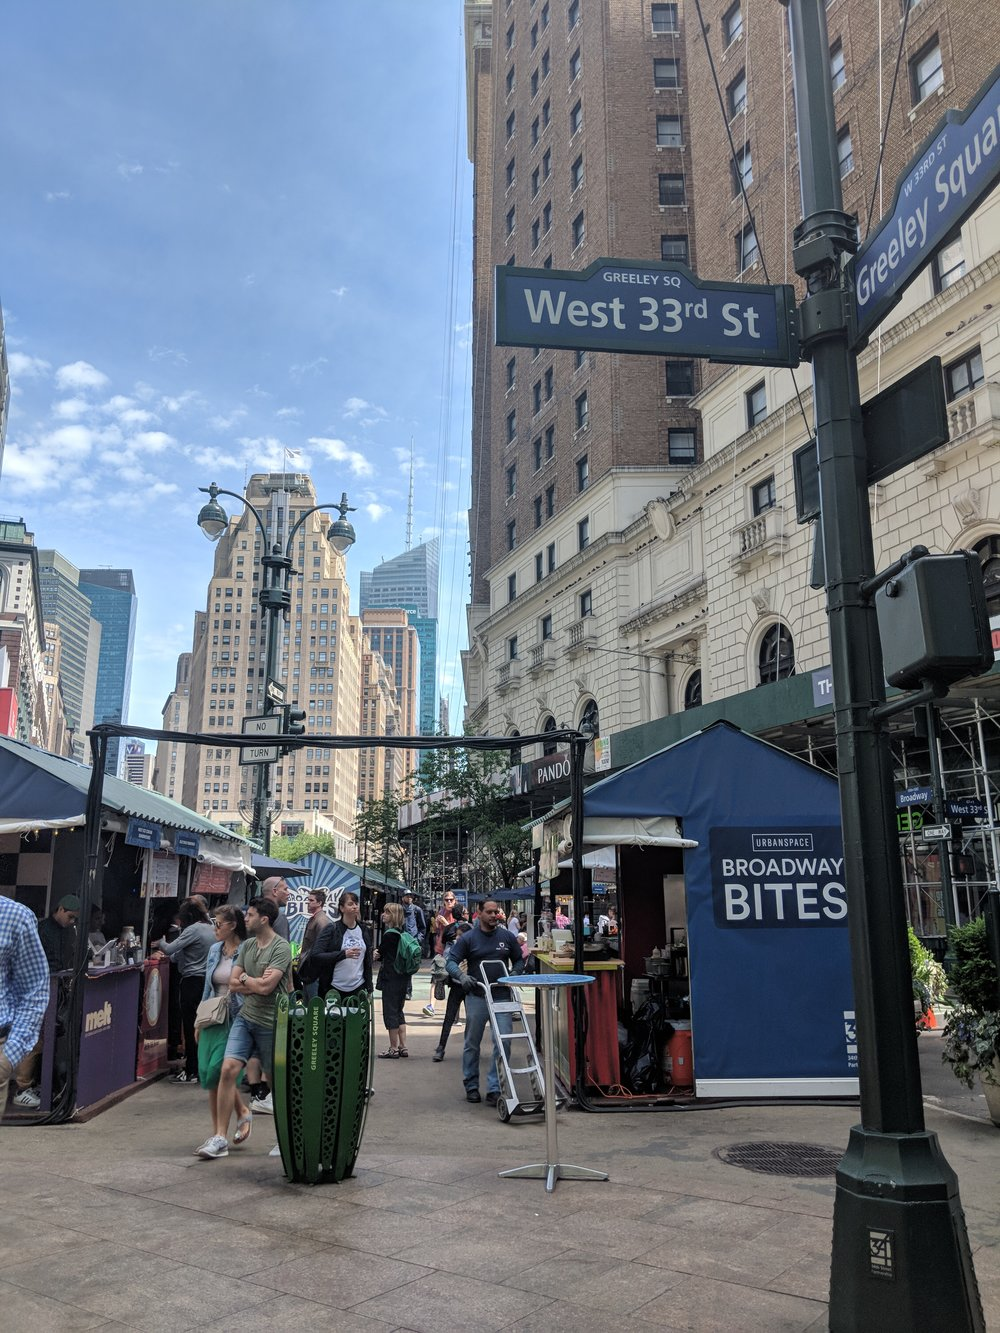 After parking the car, we walked for blocks, just exploring the city.  We stumbled upon Broadway Bites just in time for lunch.